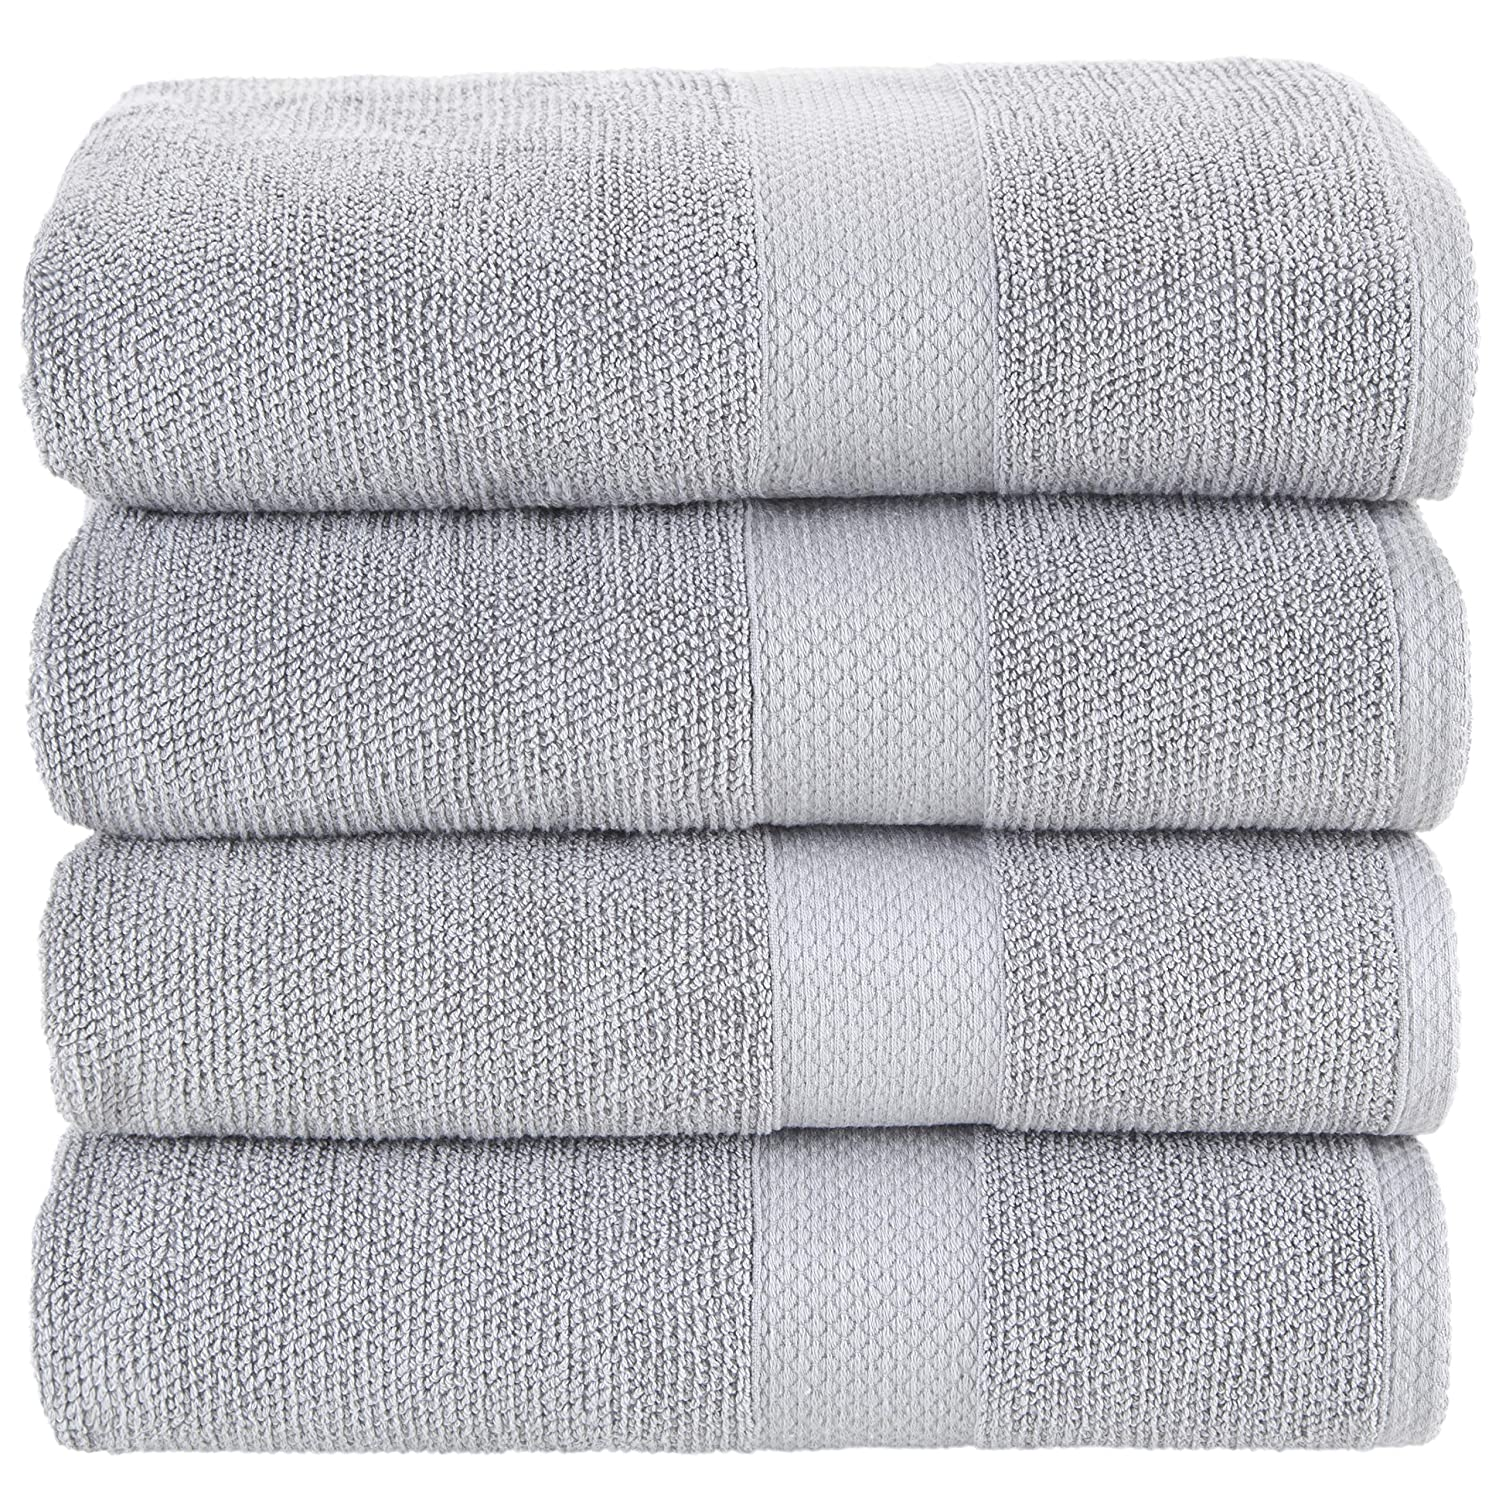 Bath Towels Grey 4-Piece Set - 100% Cotton Luxury Quick Dry Turkish Towels for Bathroom, Guests, Hot Tub - Hotel Quality Collection Bath Towels, ...